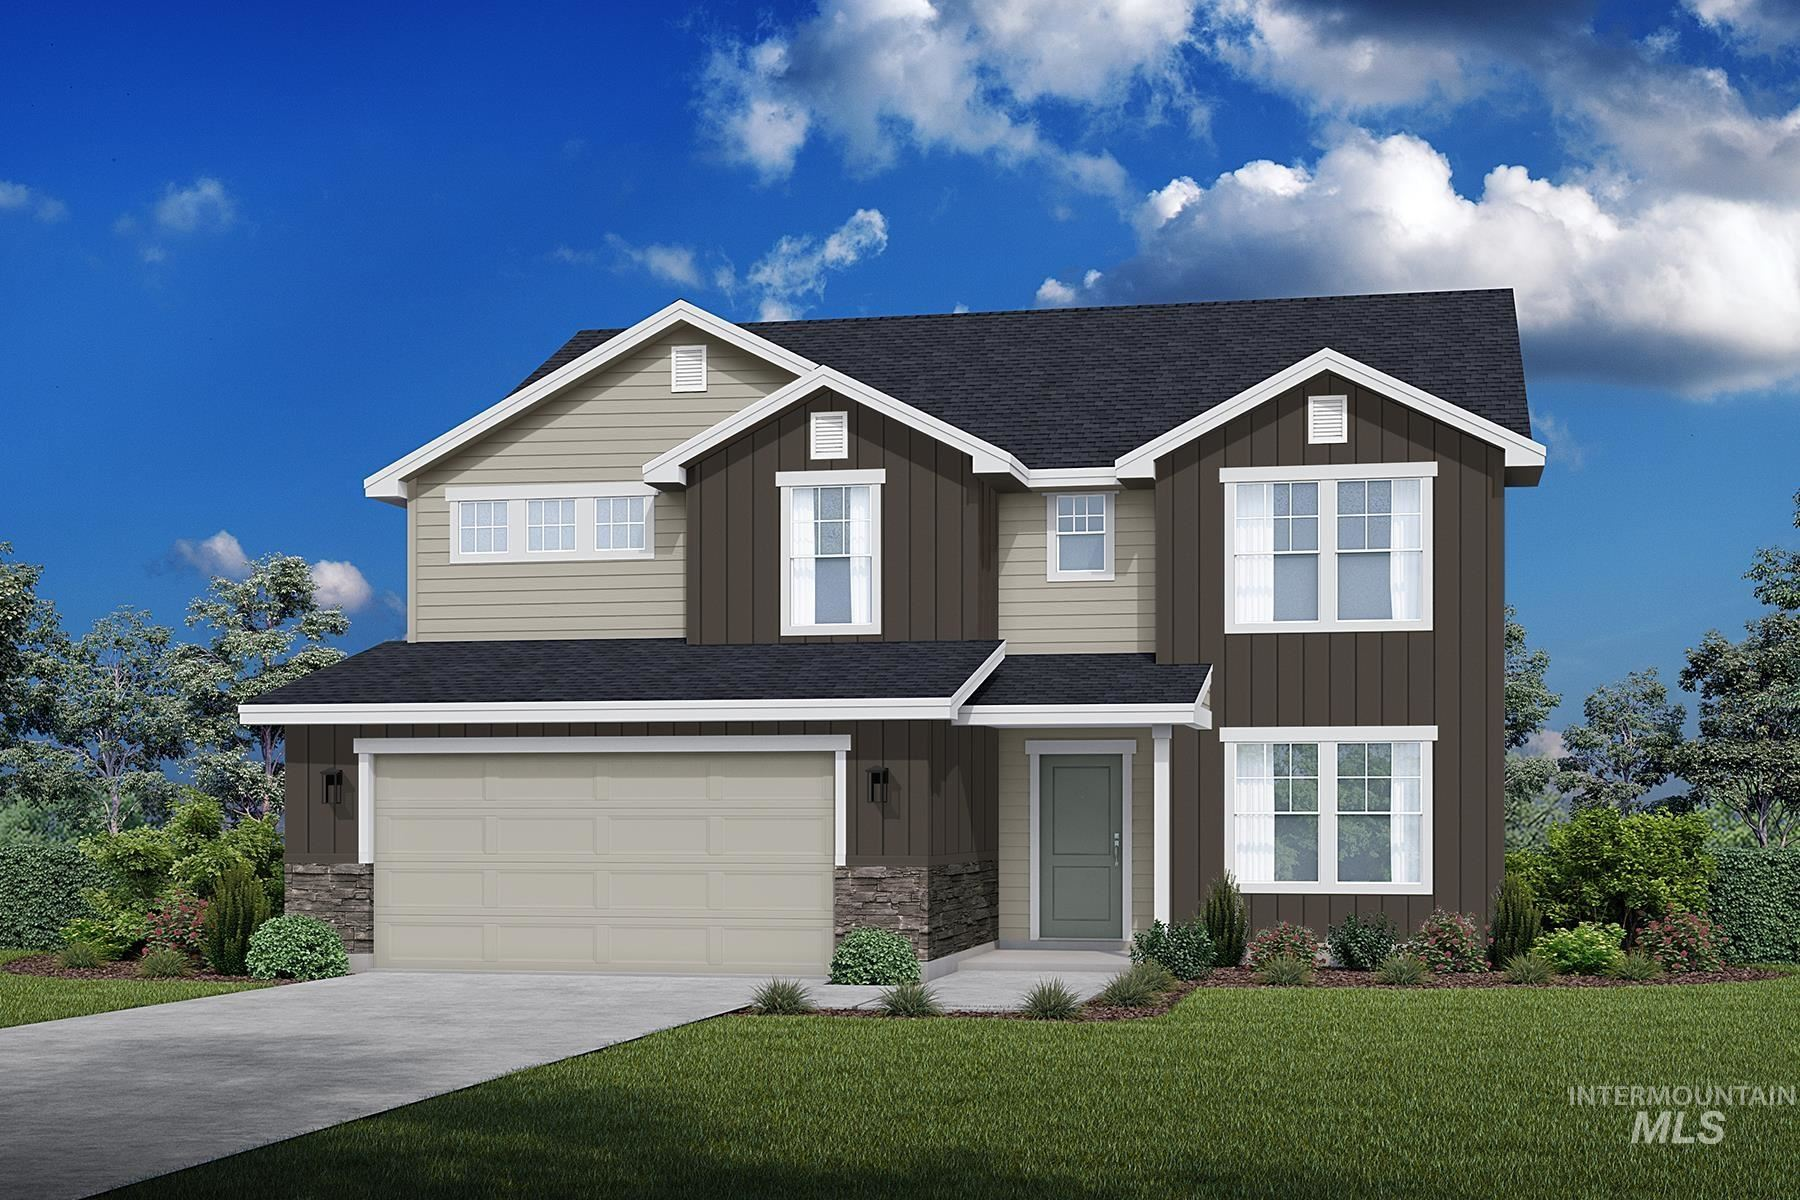 10304 Longtail Dr., Nampa, ID 83687 - MLS#: 98802145